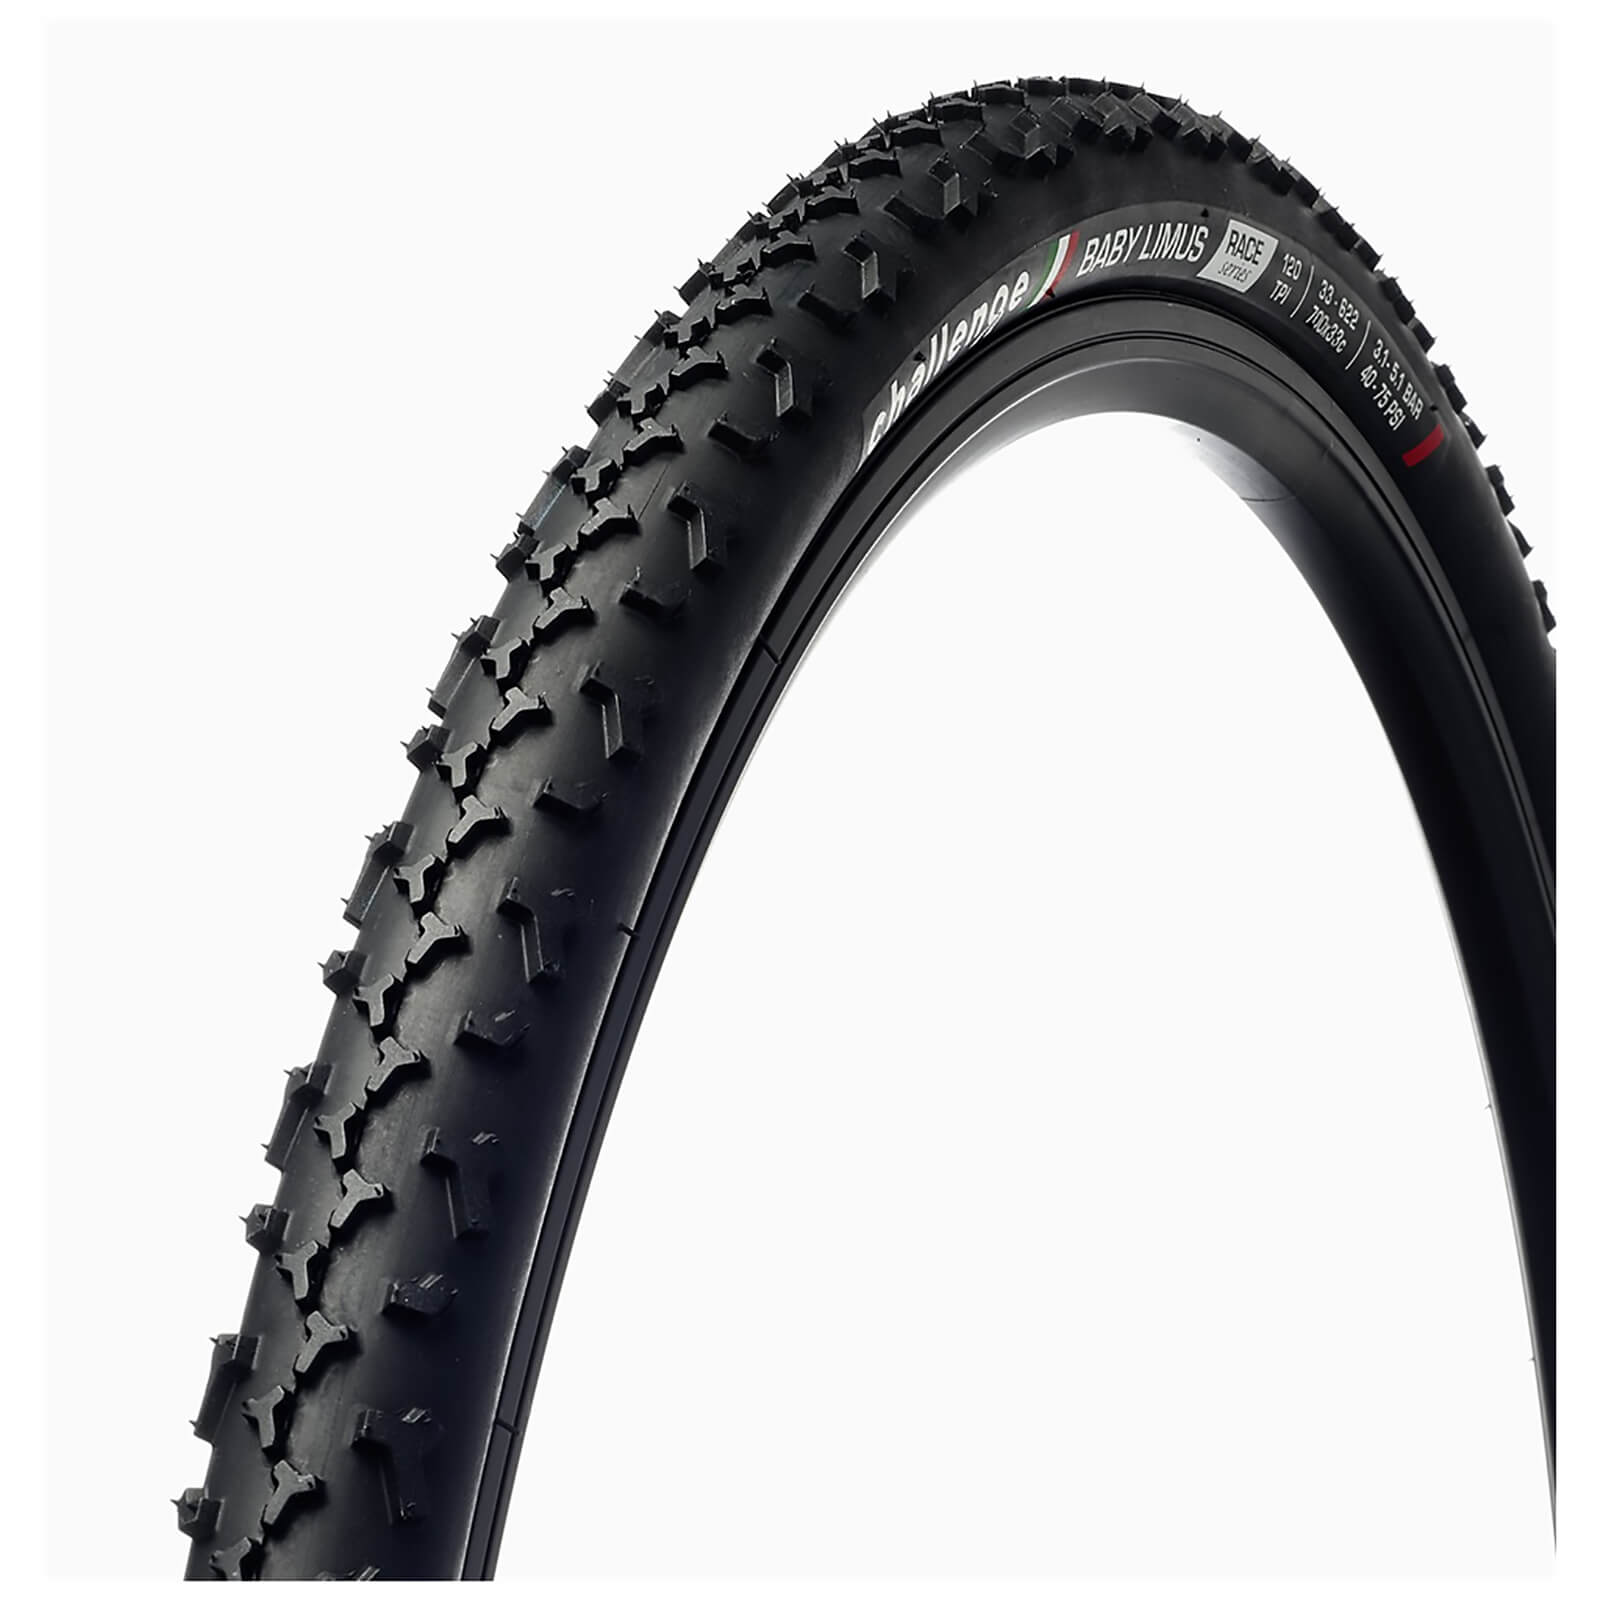 Challenge Baby Limus Race 120 Tpi Clincher Cyclocross Tyre